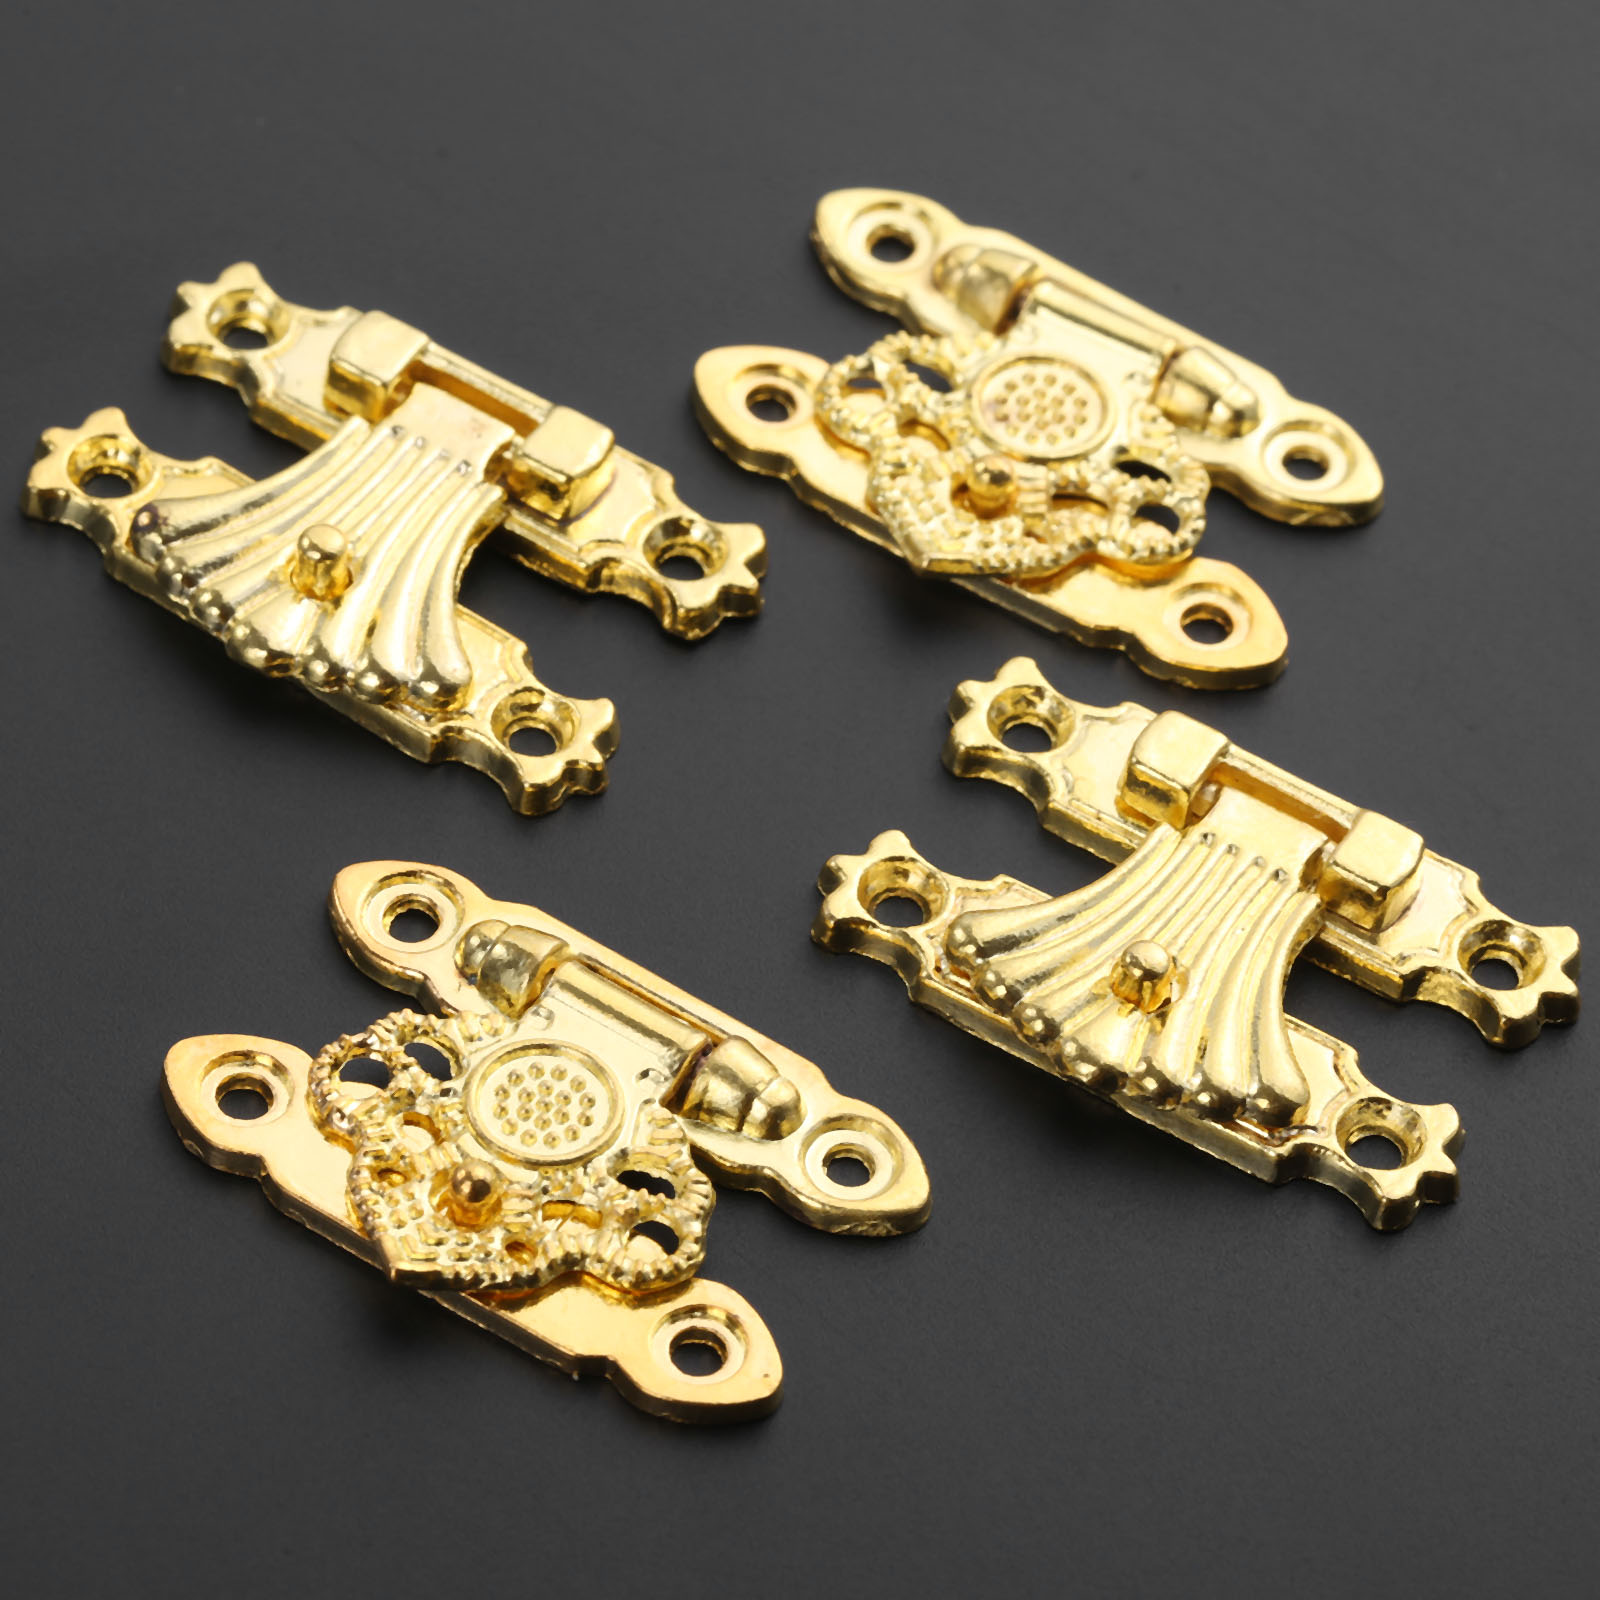 37x24mm Box Latch Clasps Antique Alloy Jewelry Box Padlock Hasp Locked Bronze Flower Wooden Wine Gift Box Handbag Parts